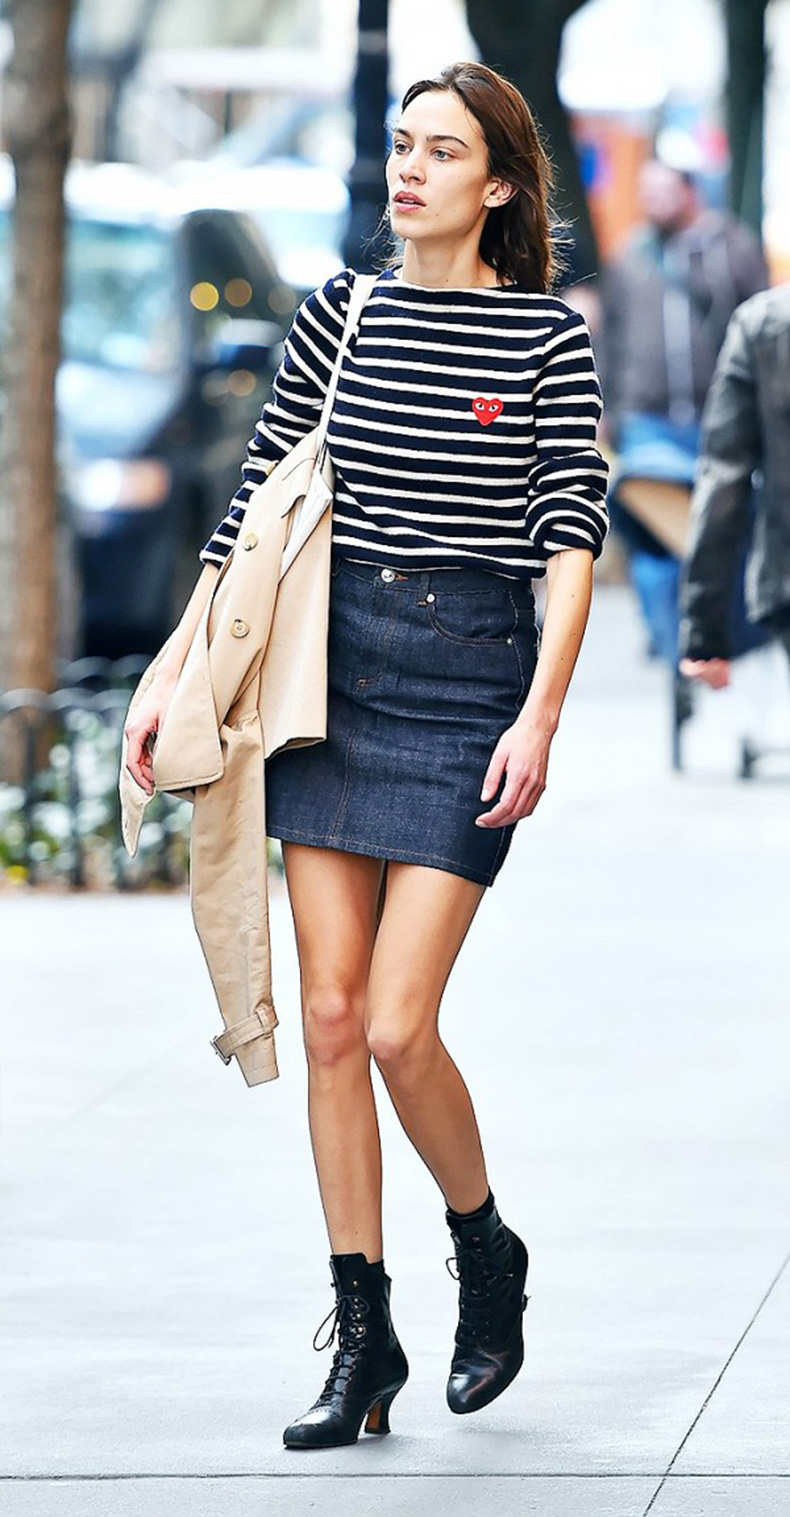 5-cute-celeb-outfits-you-can-re-create-for-way-less-1752888-1461990497.600x0c